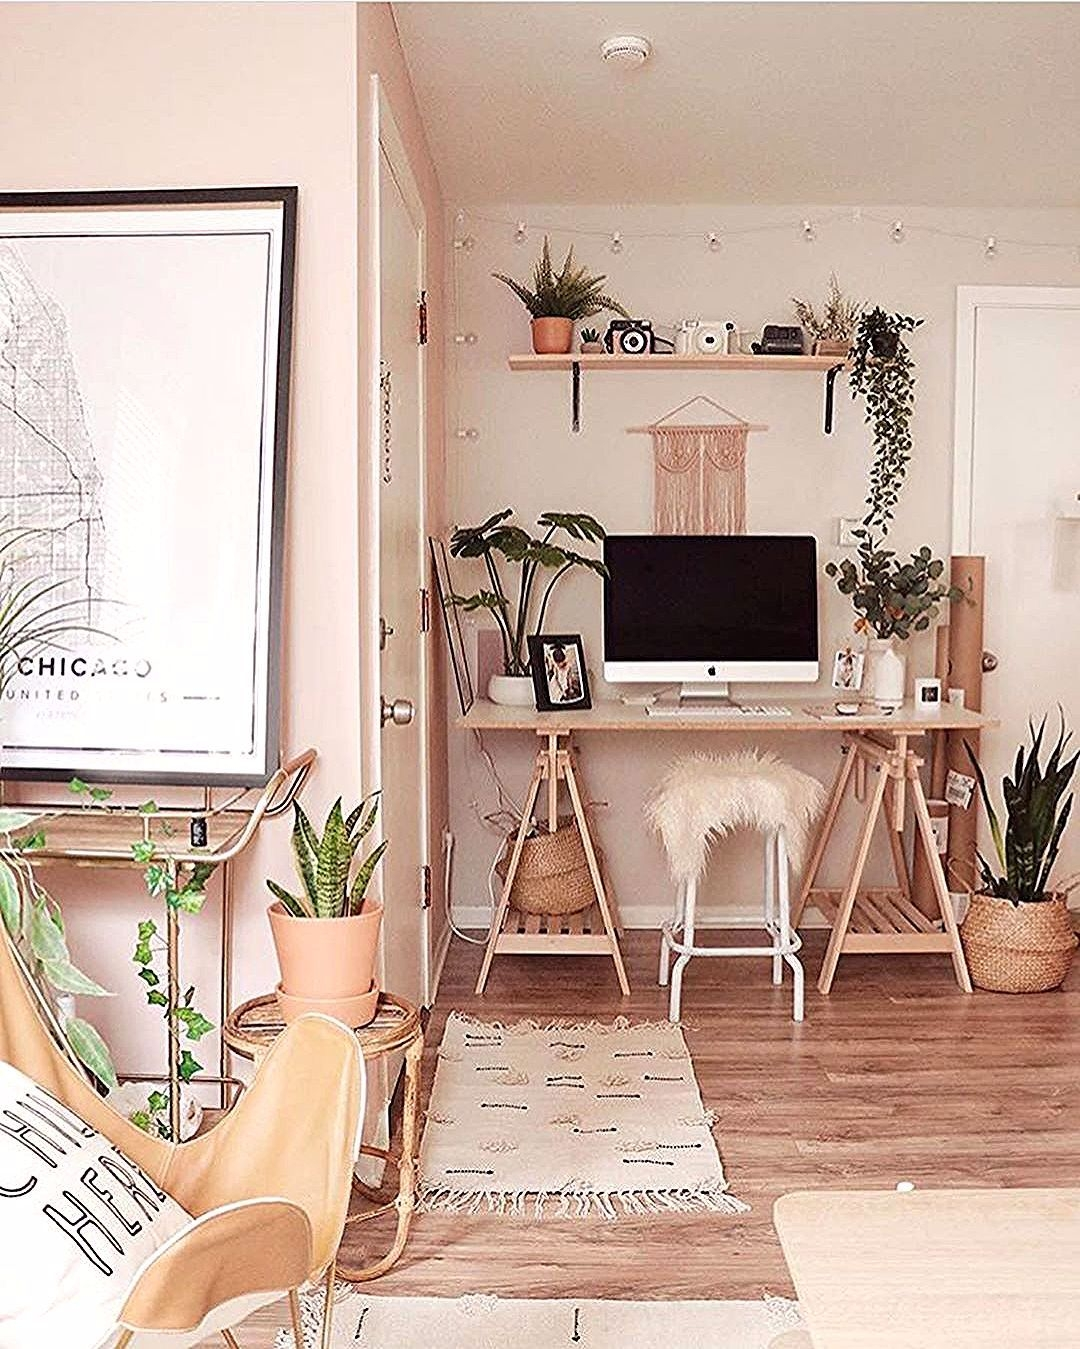 Elegant Home Office Decor On Engaging Pin by Julia Gutmann On 6 Flower On Home Office Decor